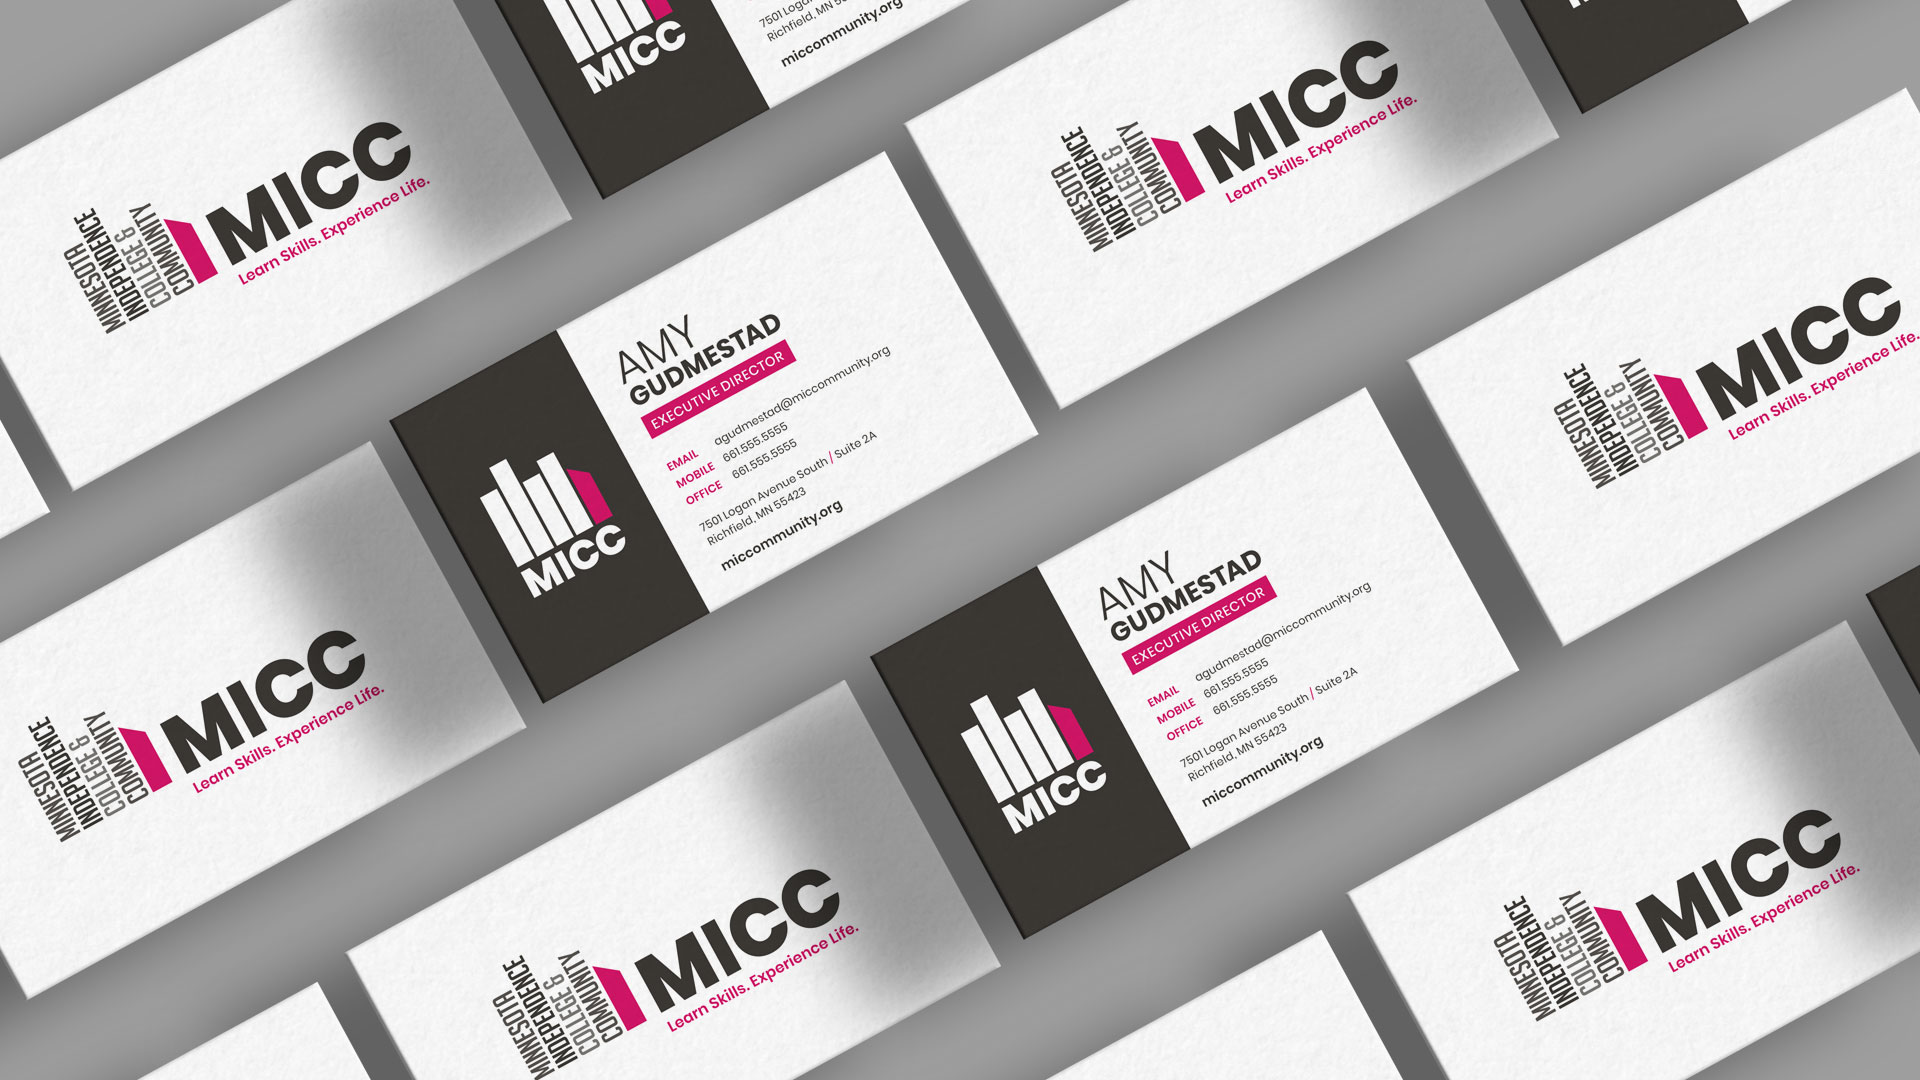 MICC business cards